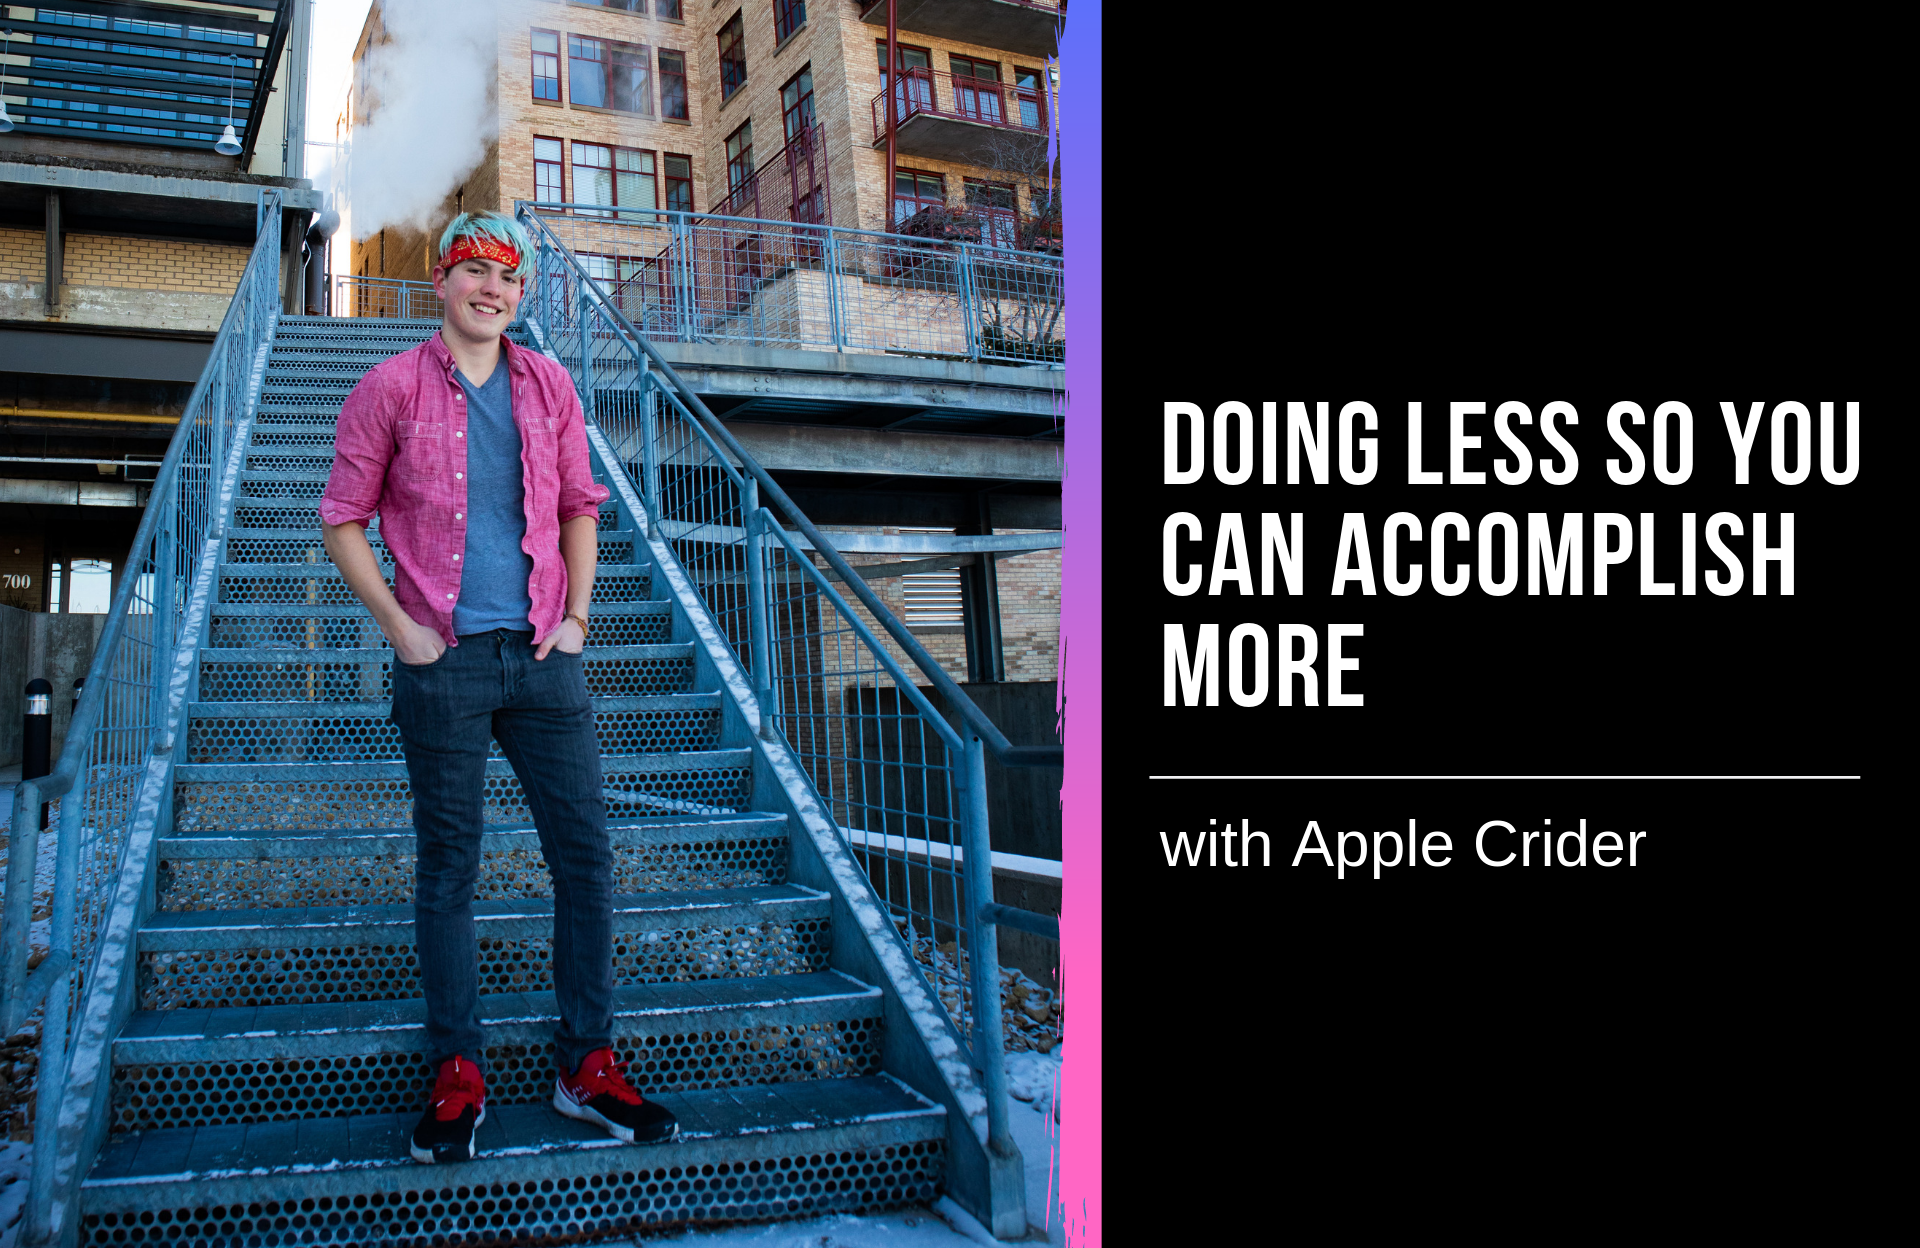 Doing Less so You Can Accomplish More with Apple Crider